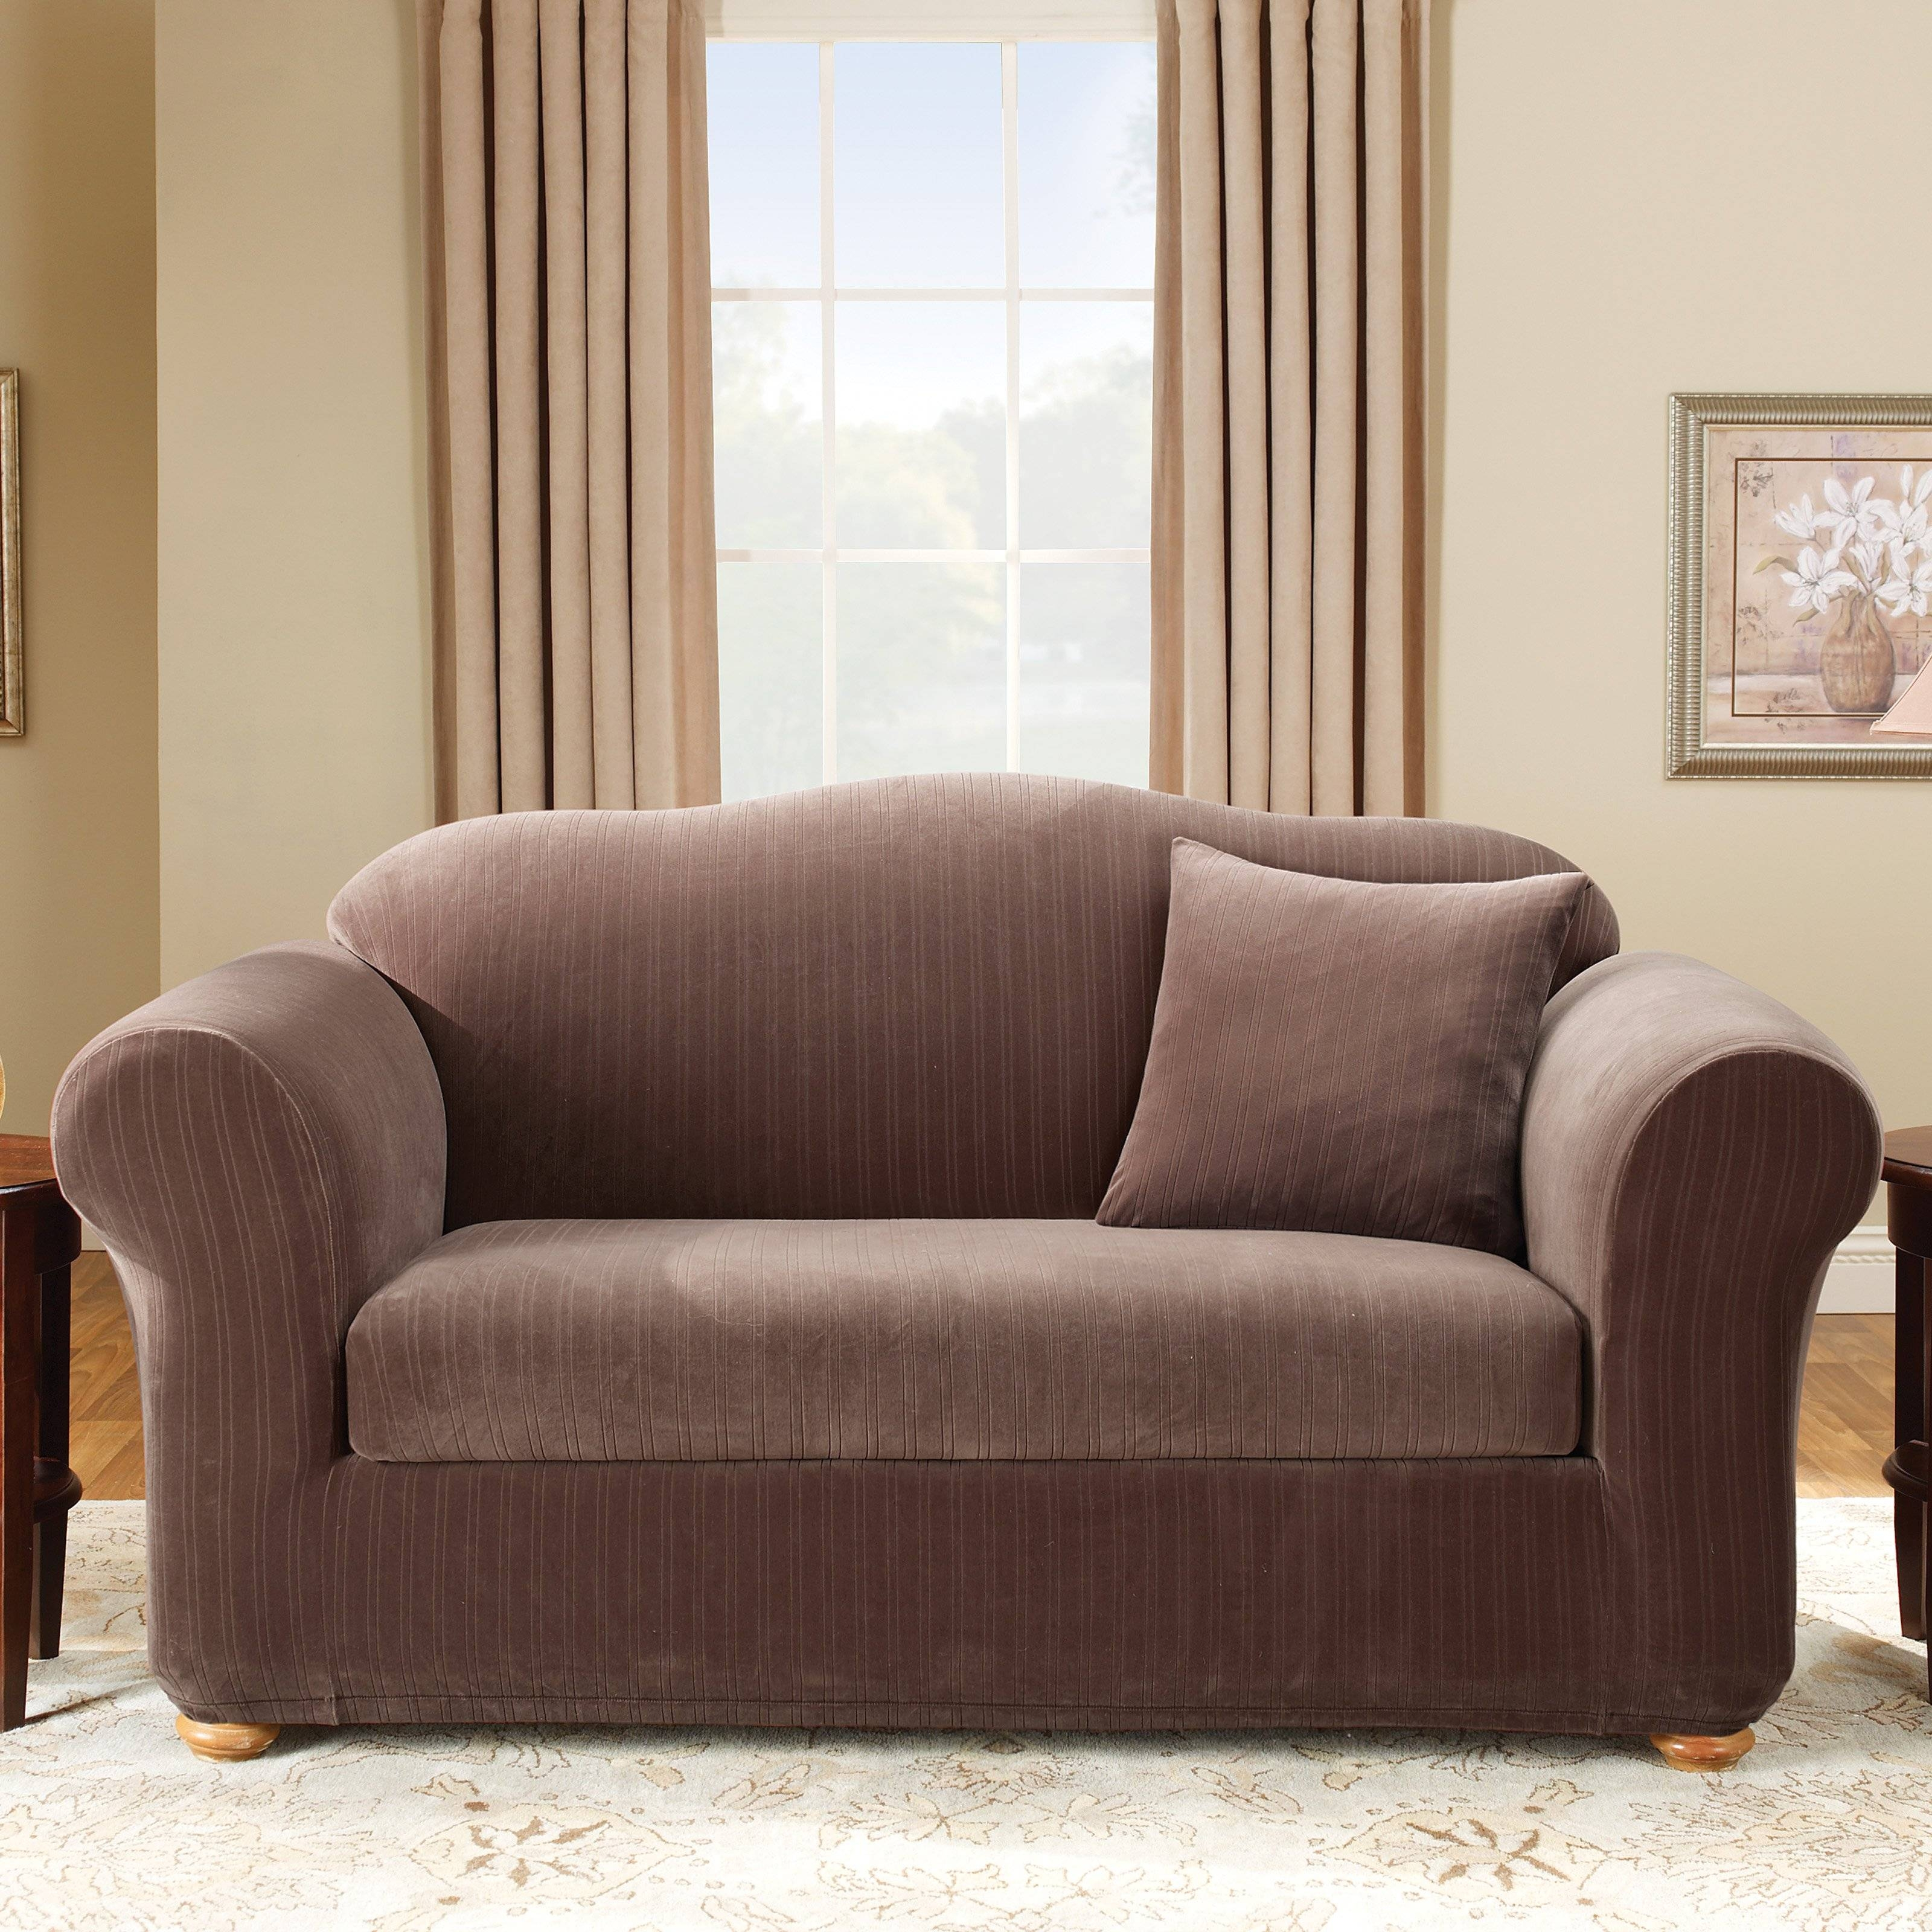 Sure Fit Stretch Pinstripe 2 Piece Sofa Slipcover - Walmart regarding 2 Piece Sofa Covers (Image 24 of 30)